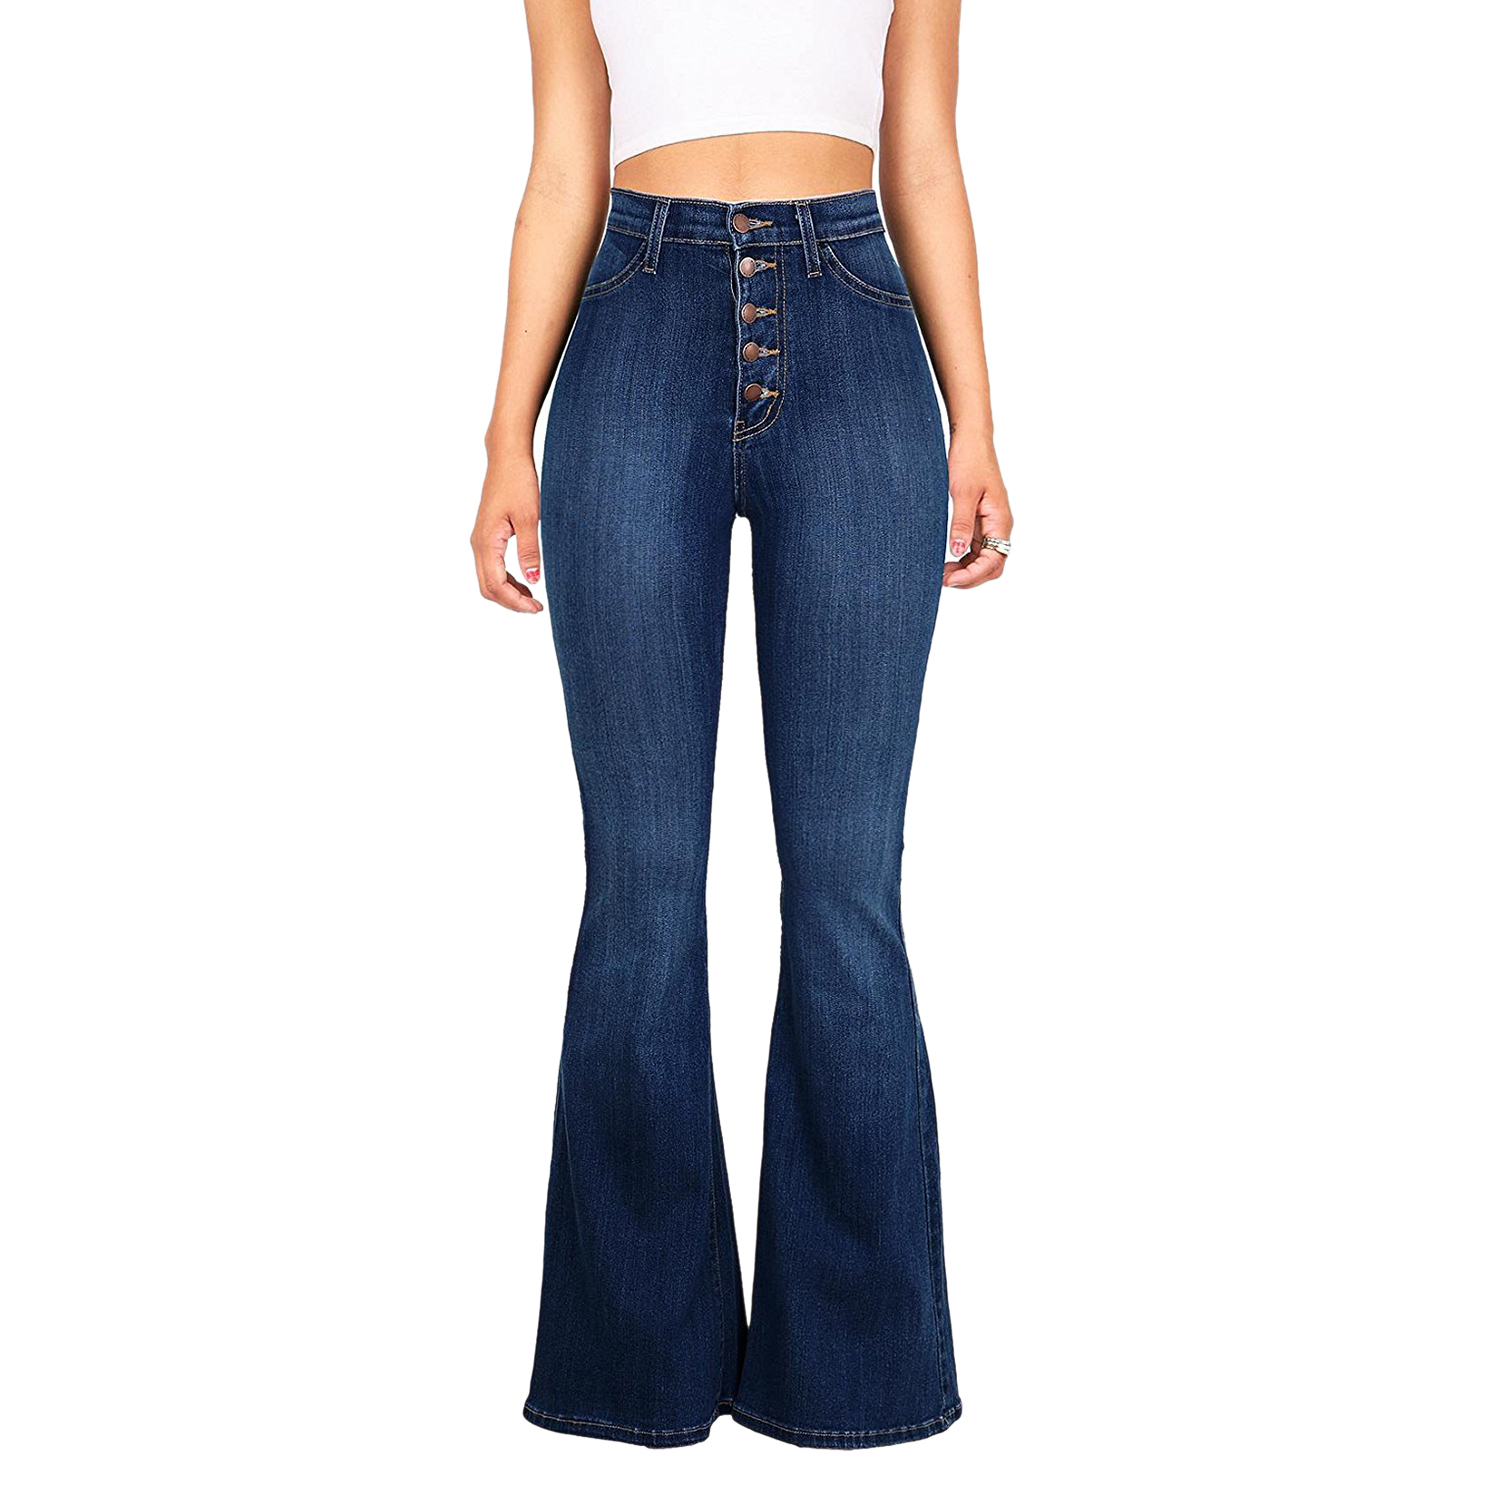 Women Vintage High Waist Stretchy Multi Button Fit Flare Jeans Ladies Casual Washed Denim Trousers Dark Blue L